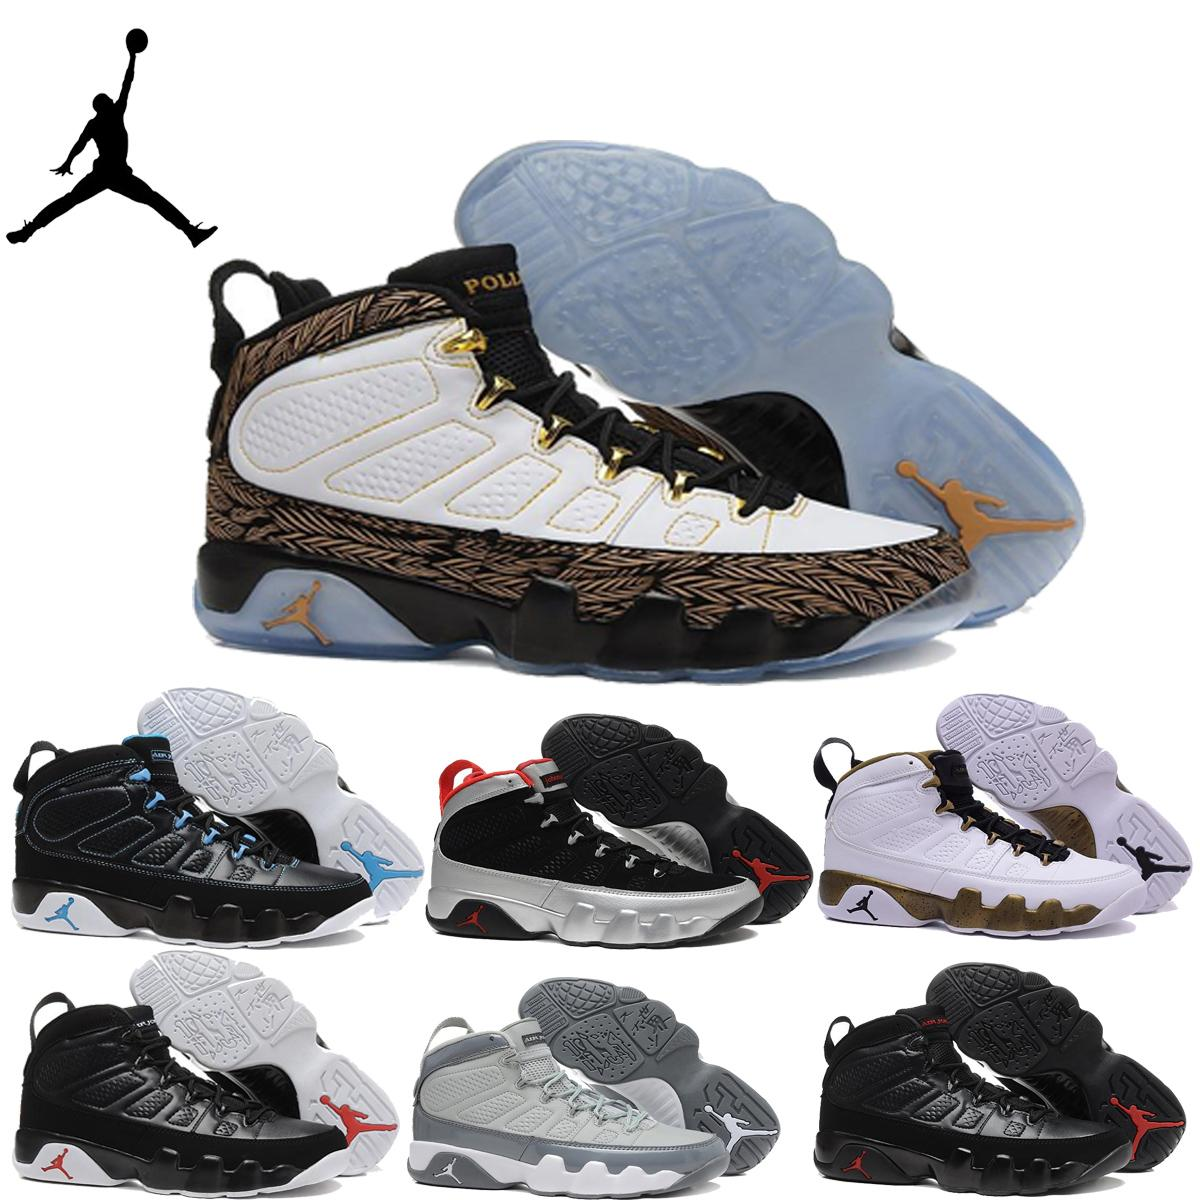 Best Selection Of Nike Shoes